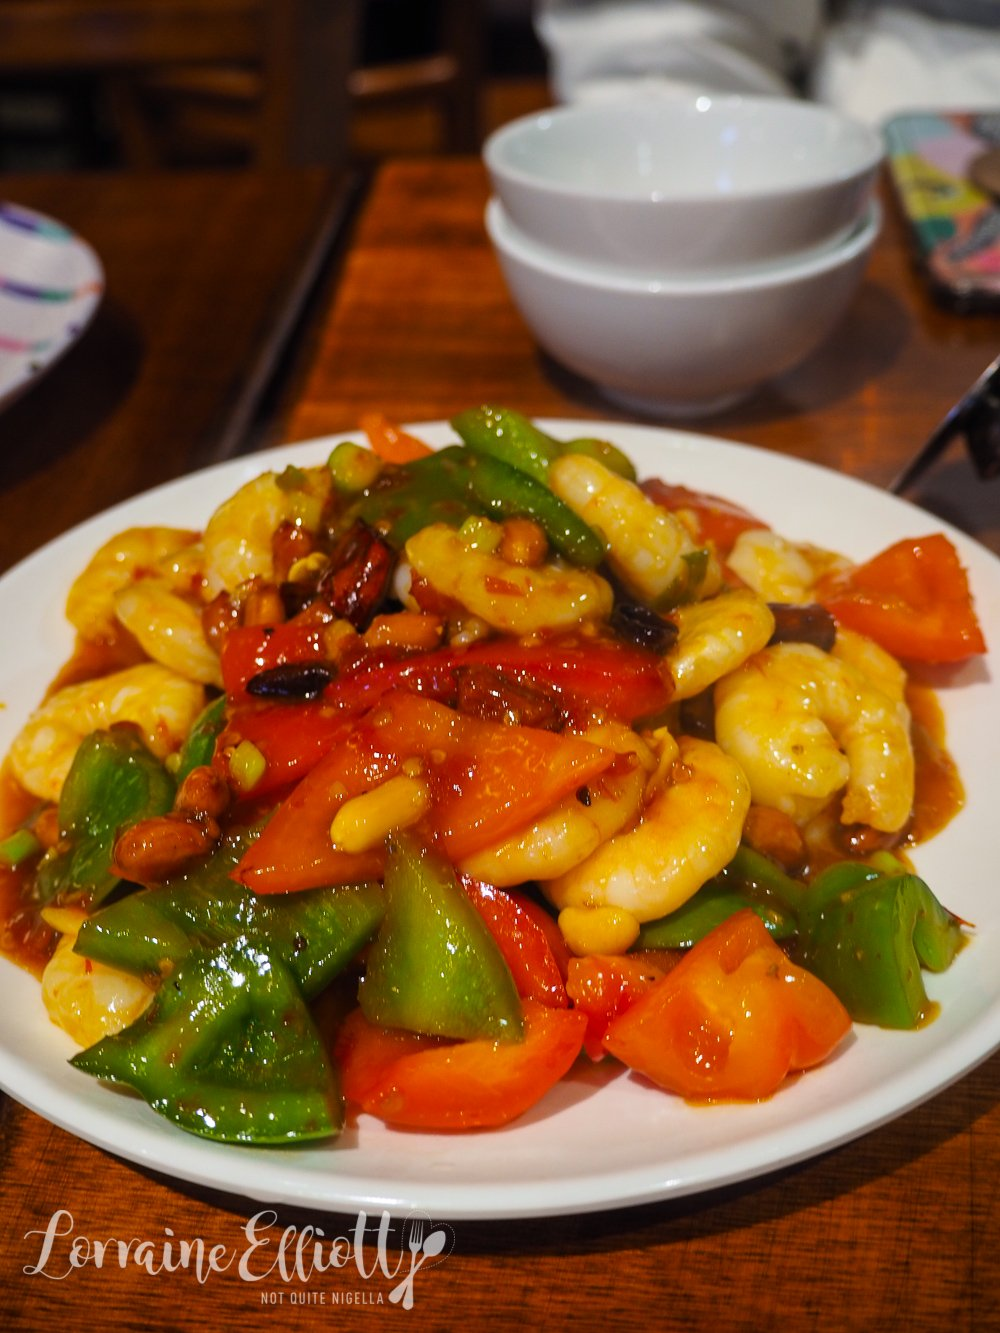 Chinese North Dumpling Noodle House, Alexandria